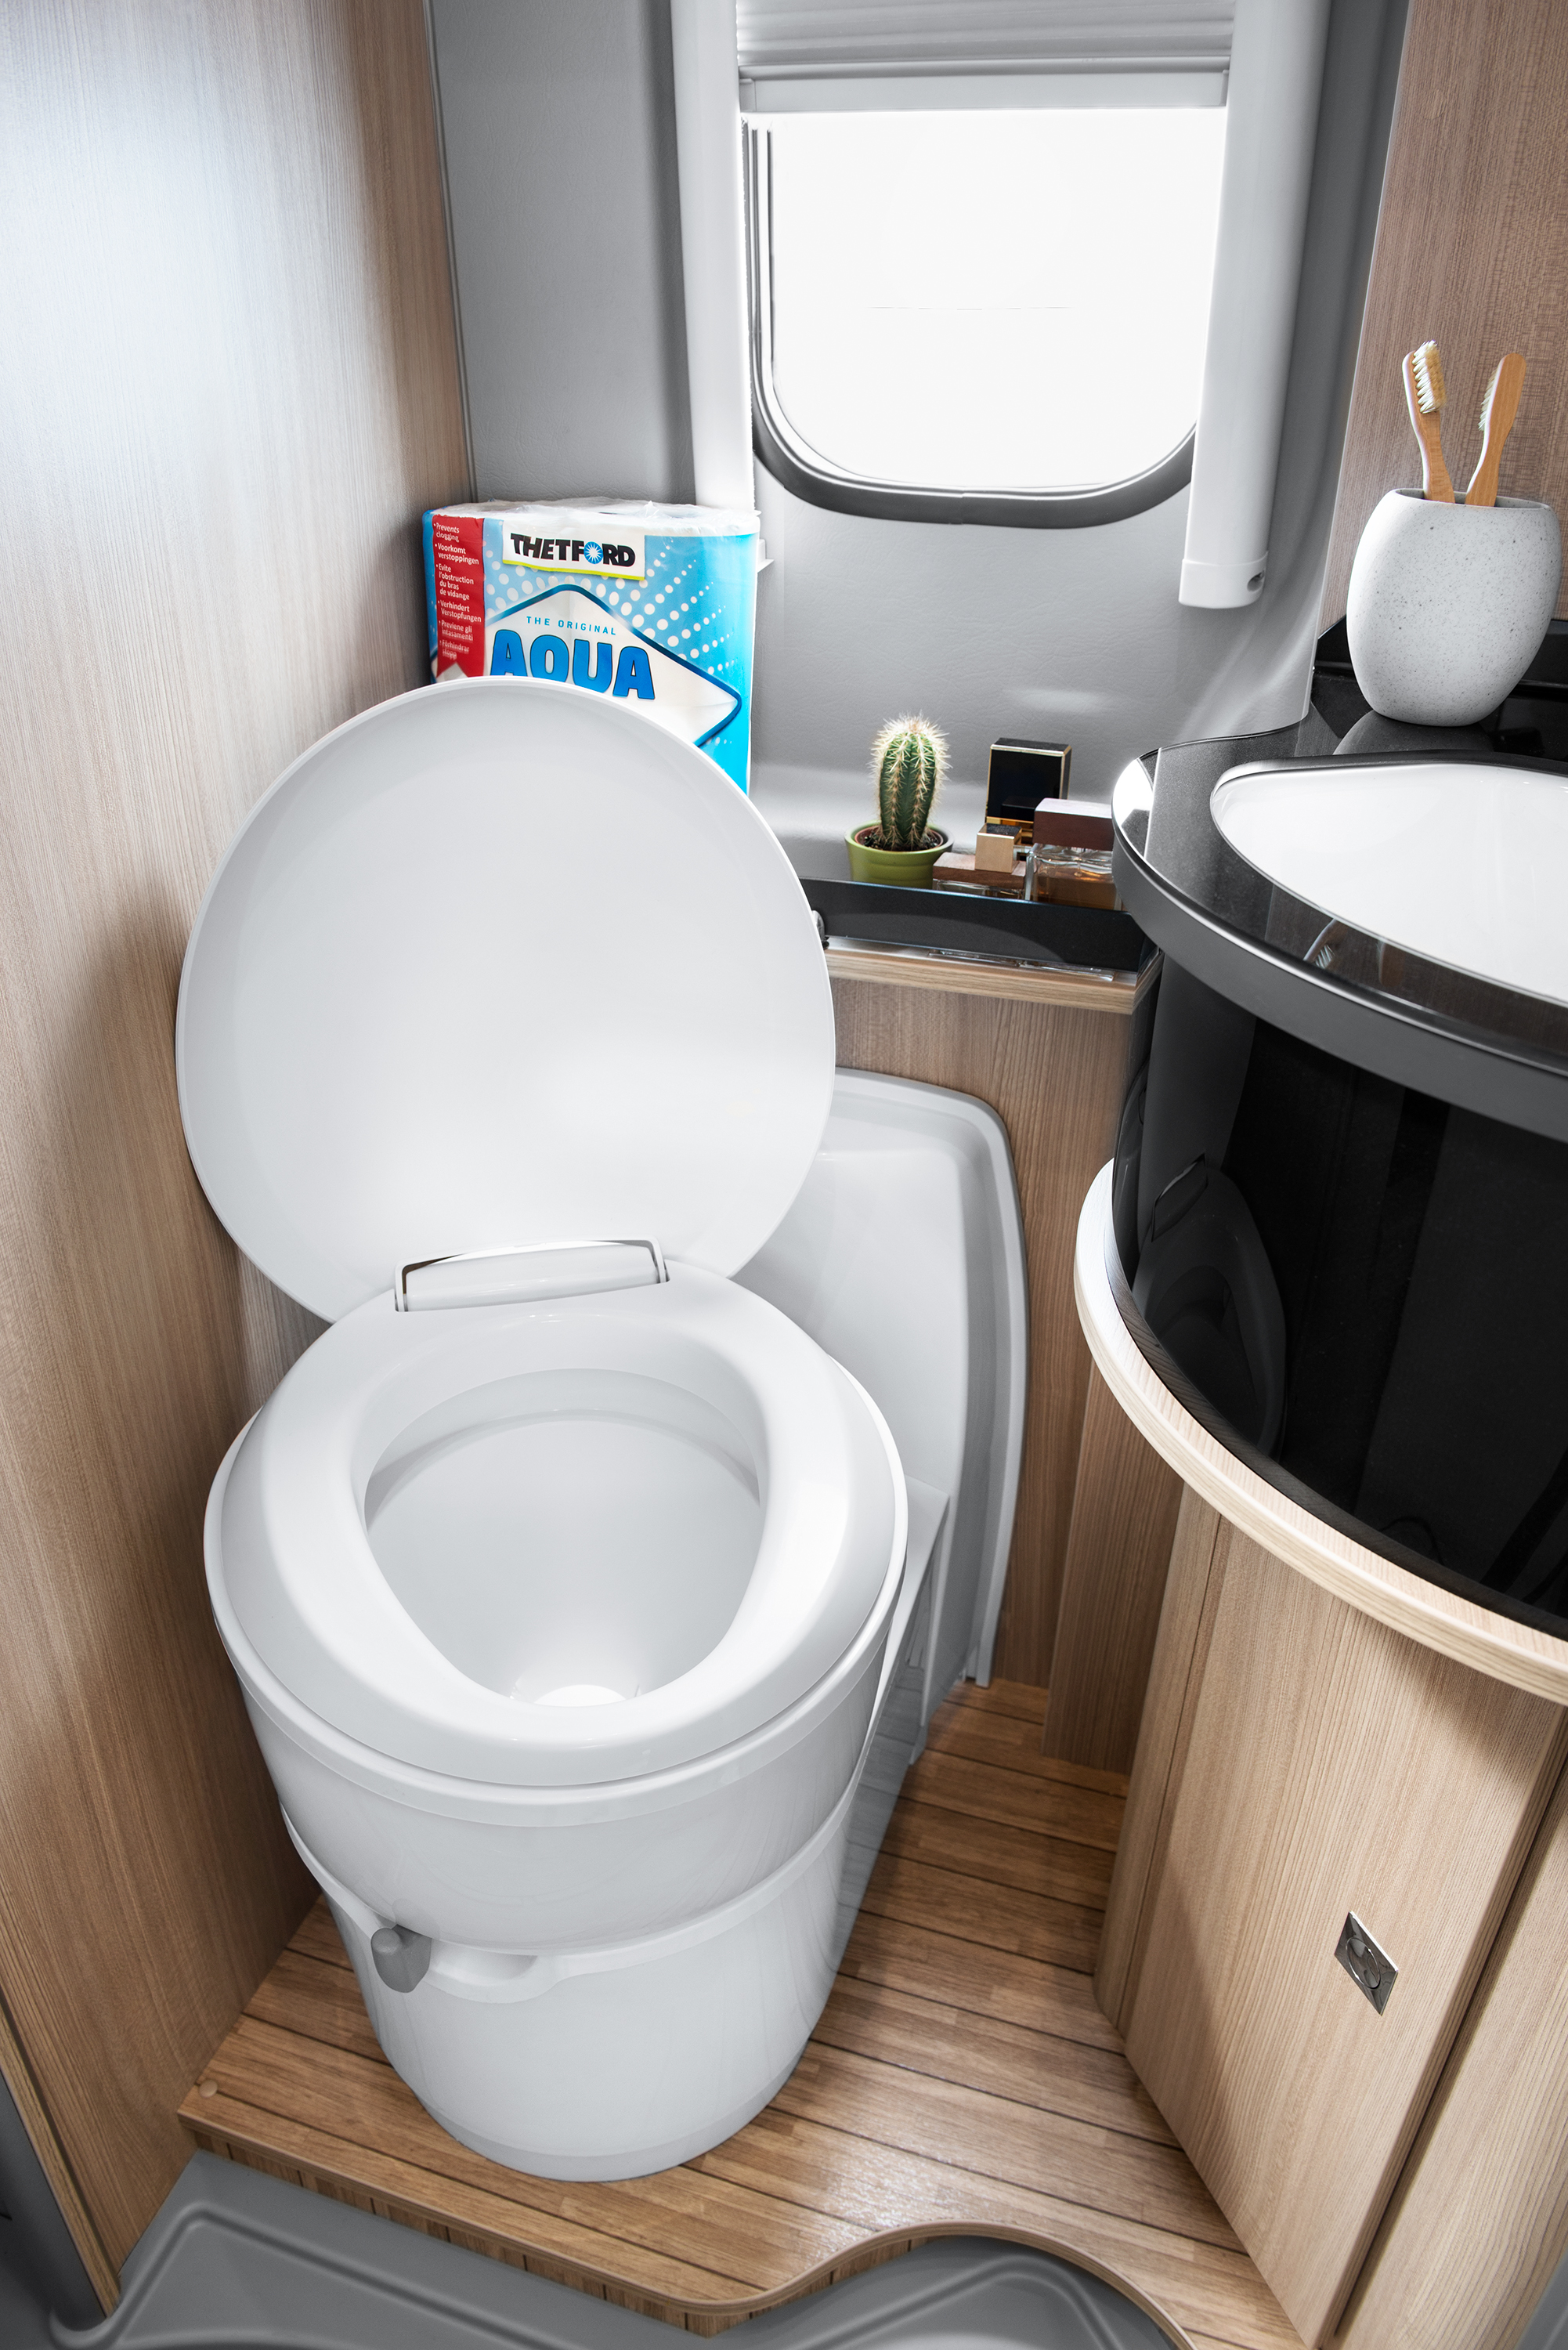 C220 Cassette Toilet Space Saving Toilet That Rotates